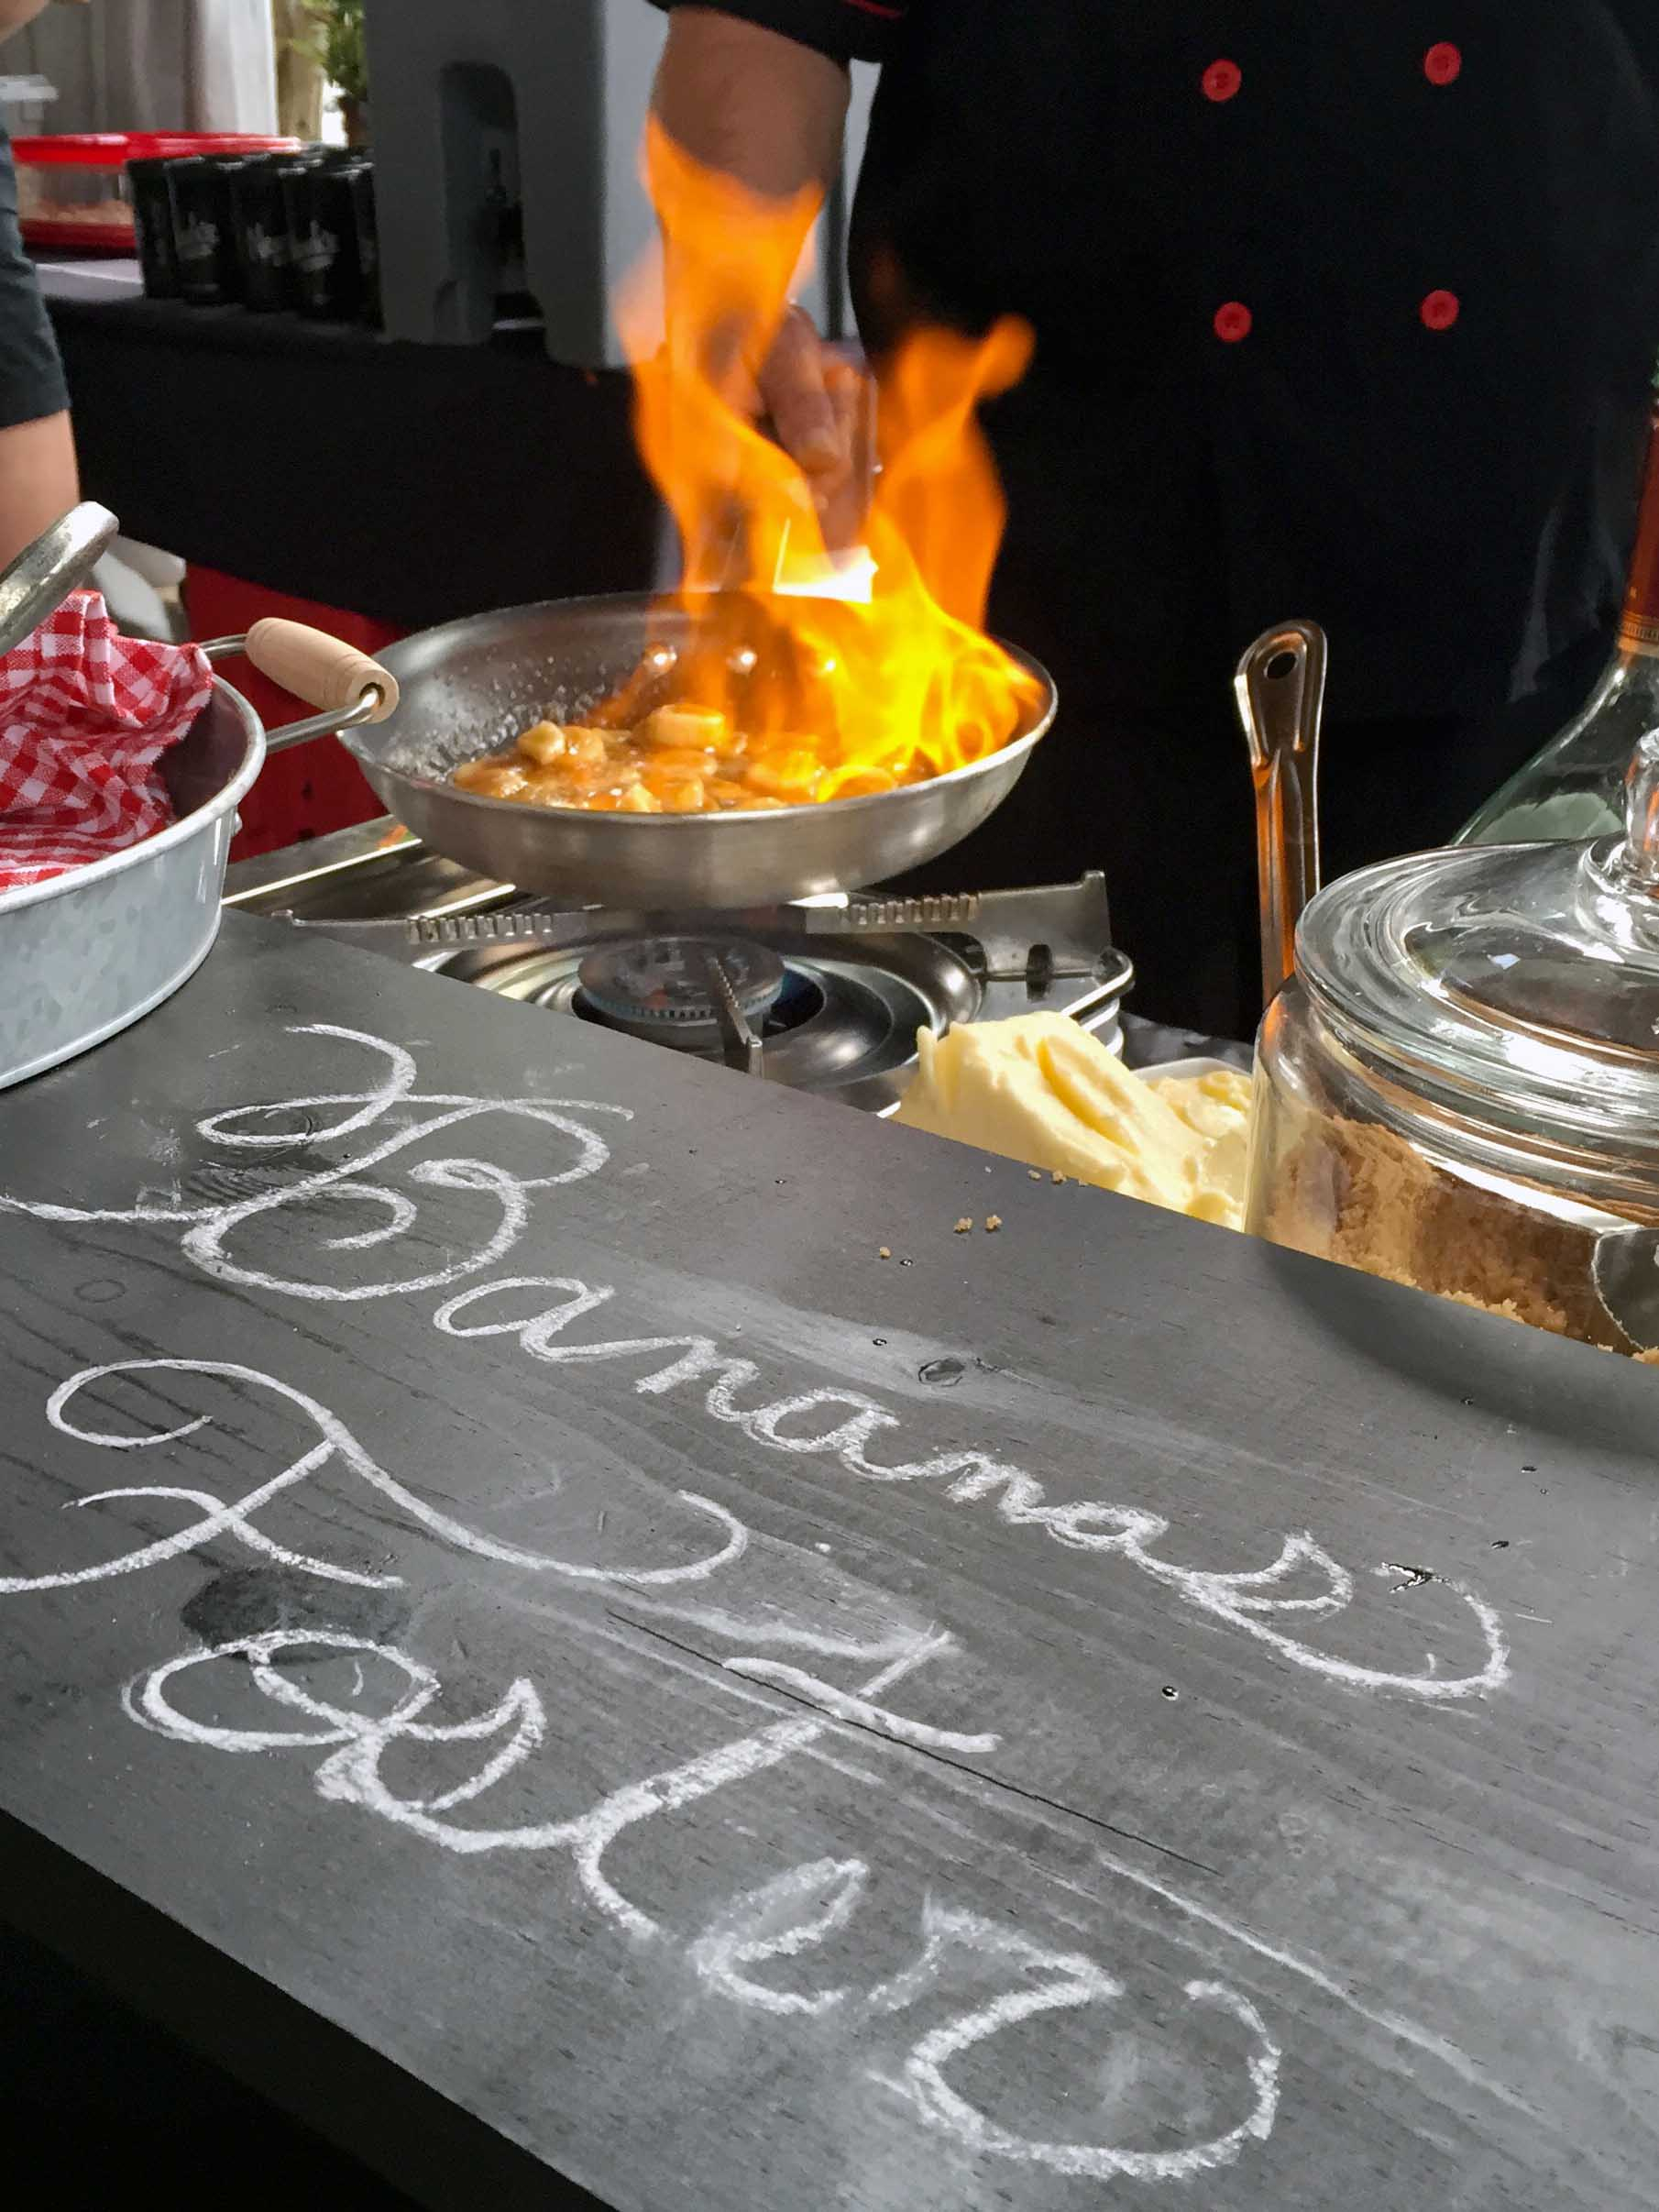 Bananas-Foster-Taste-of-the-Rock-small